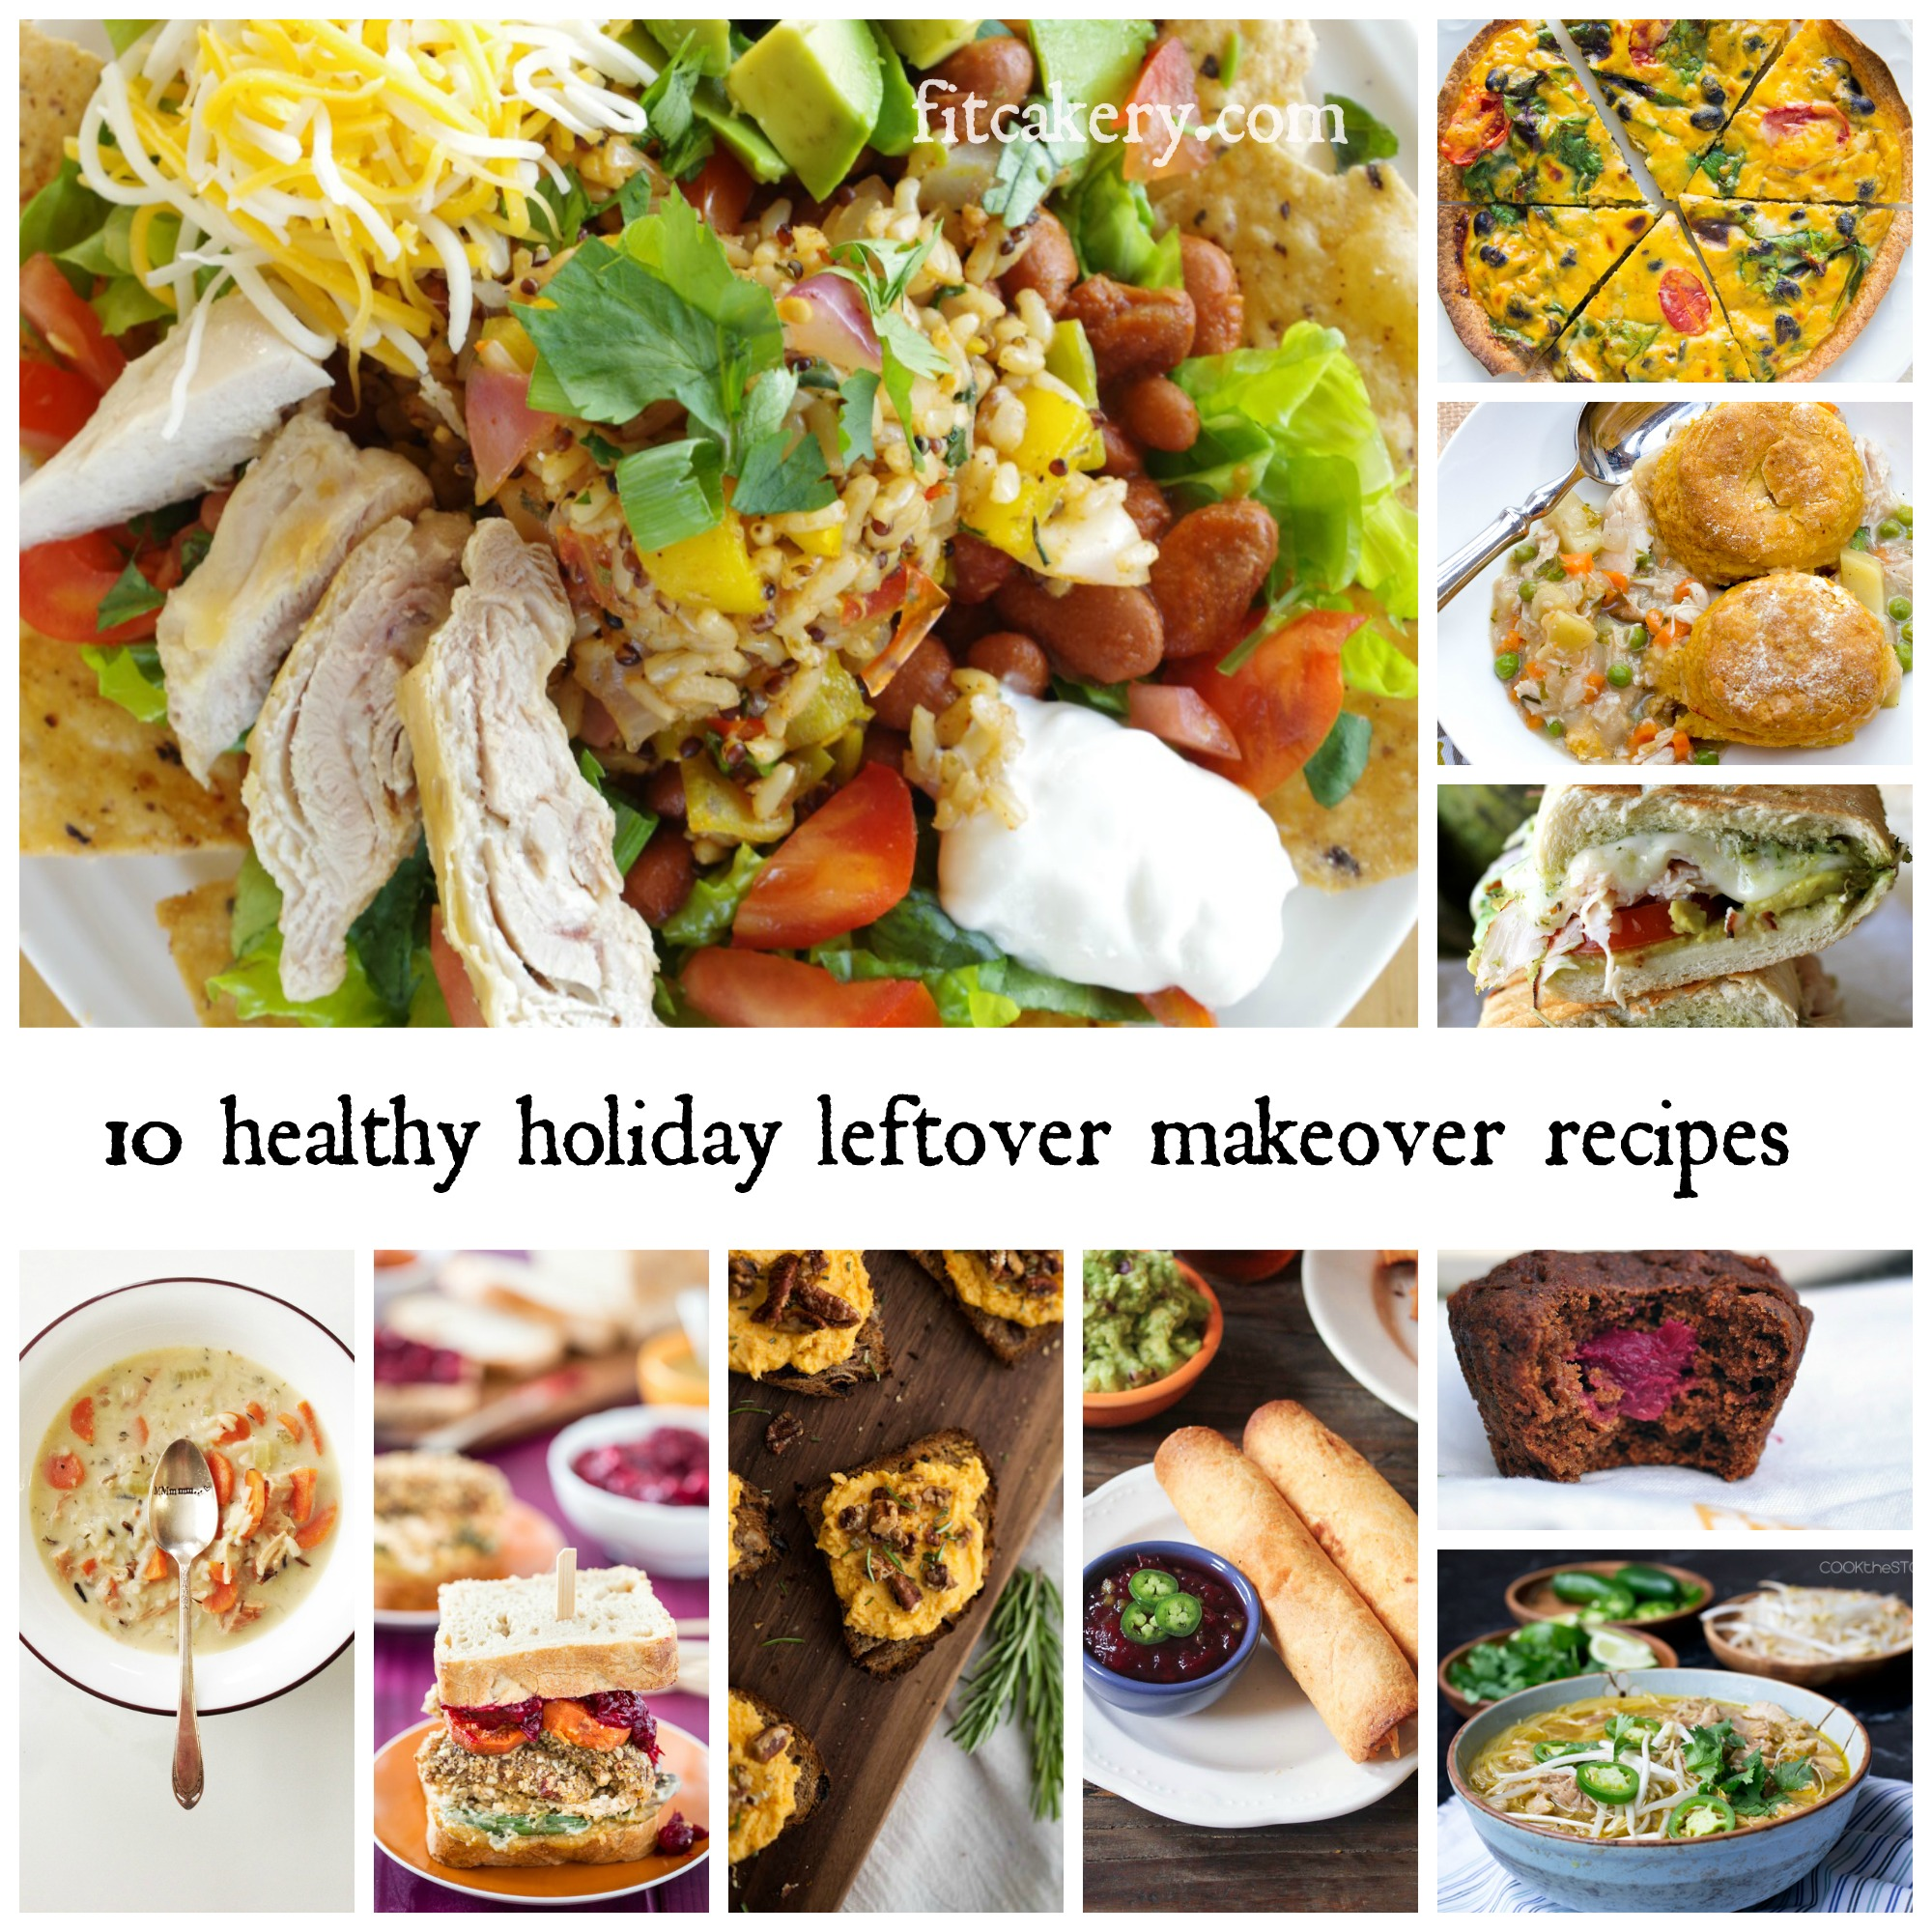 Holiday leftover MAKEover ideas that will blow your mind - and keep you on a healthy track! #healthyholidayrecipes